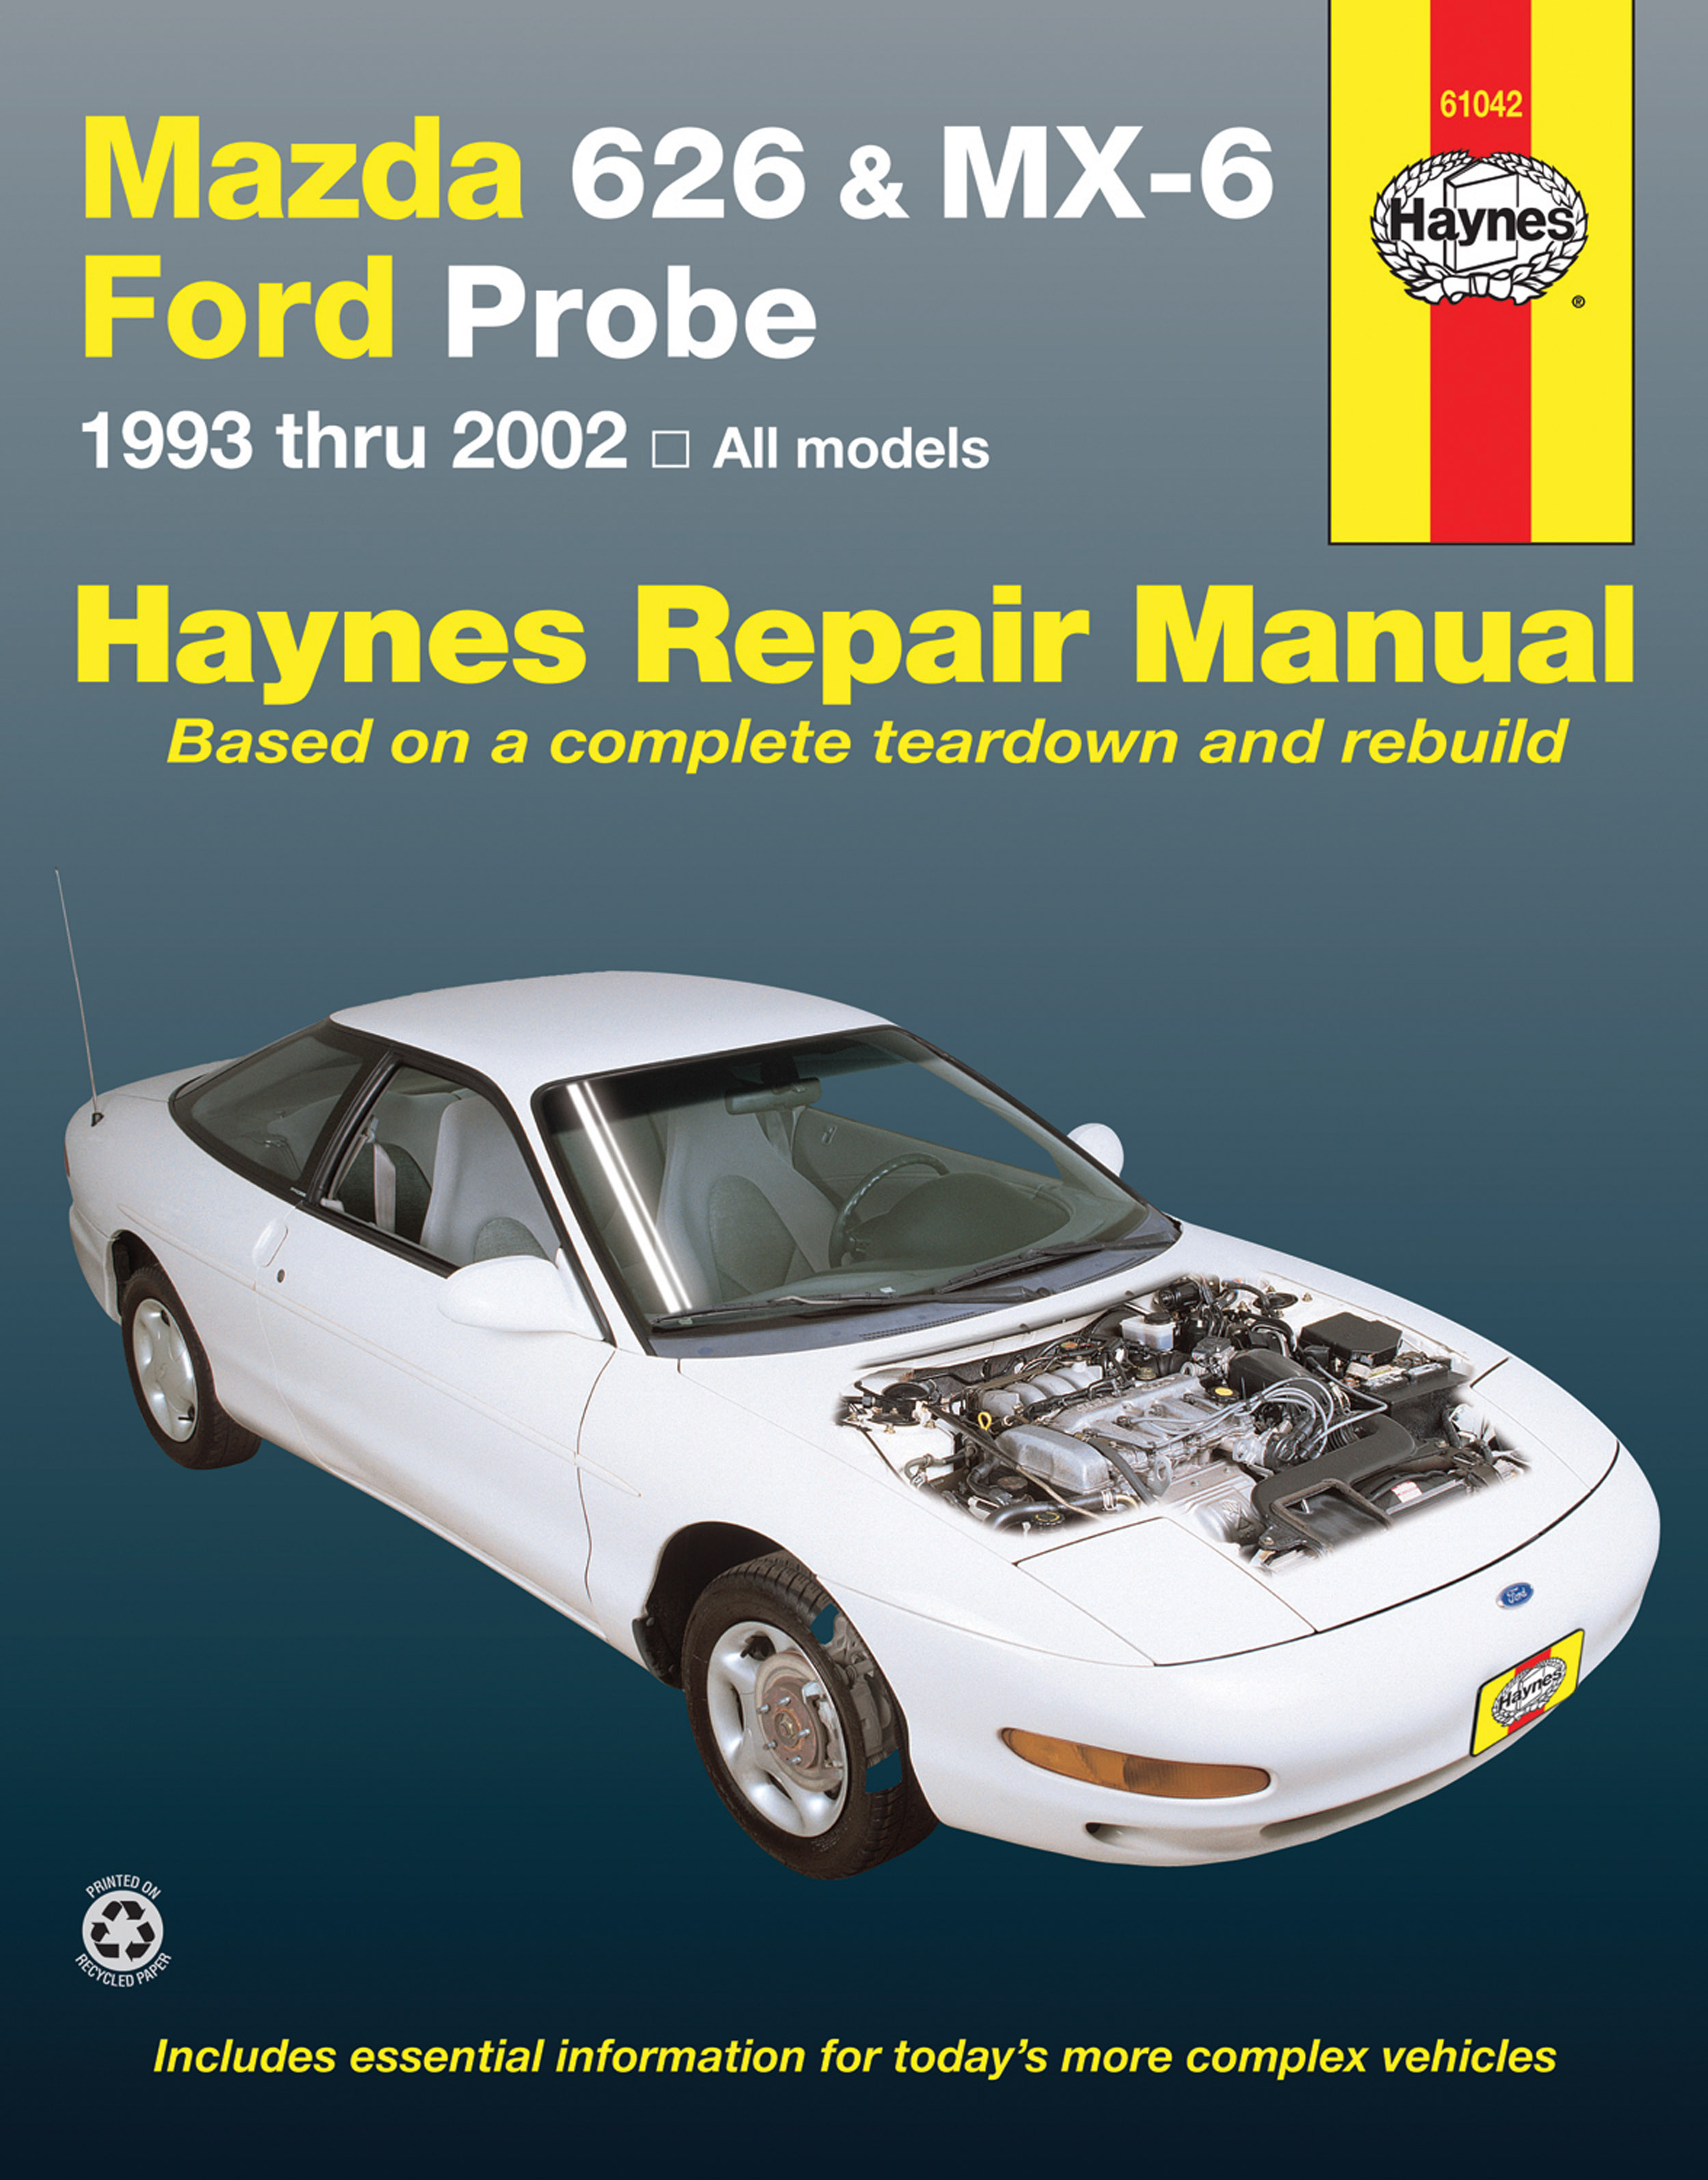 Mx-6 | haynes manuals.